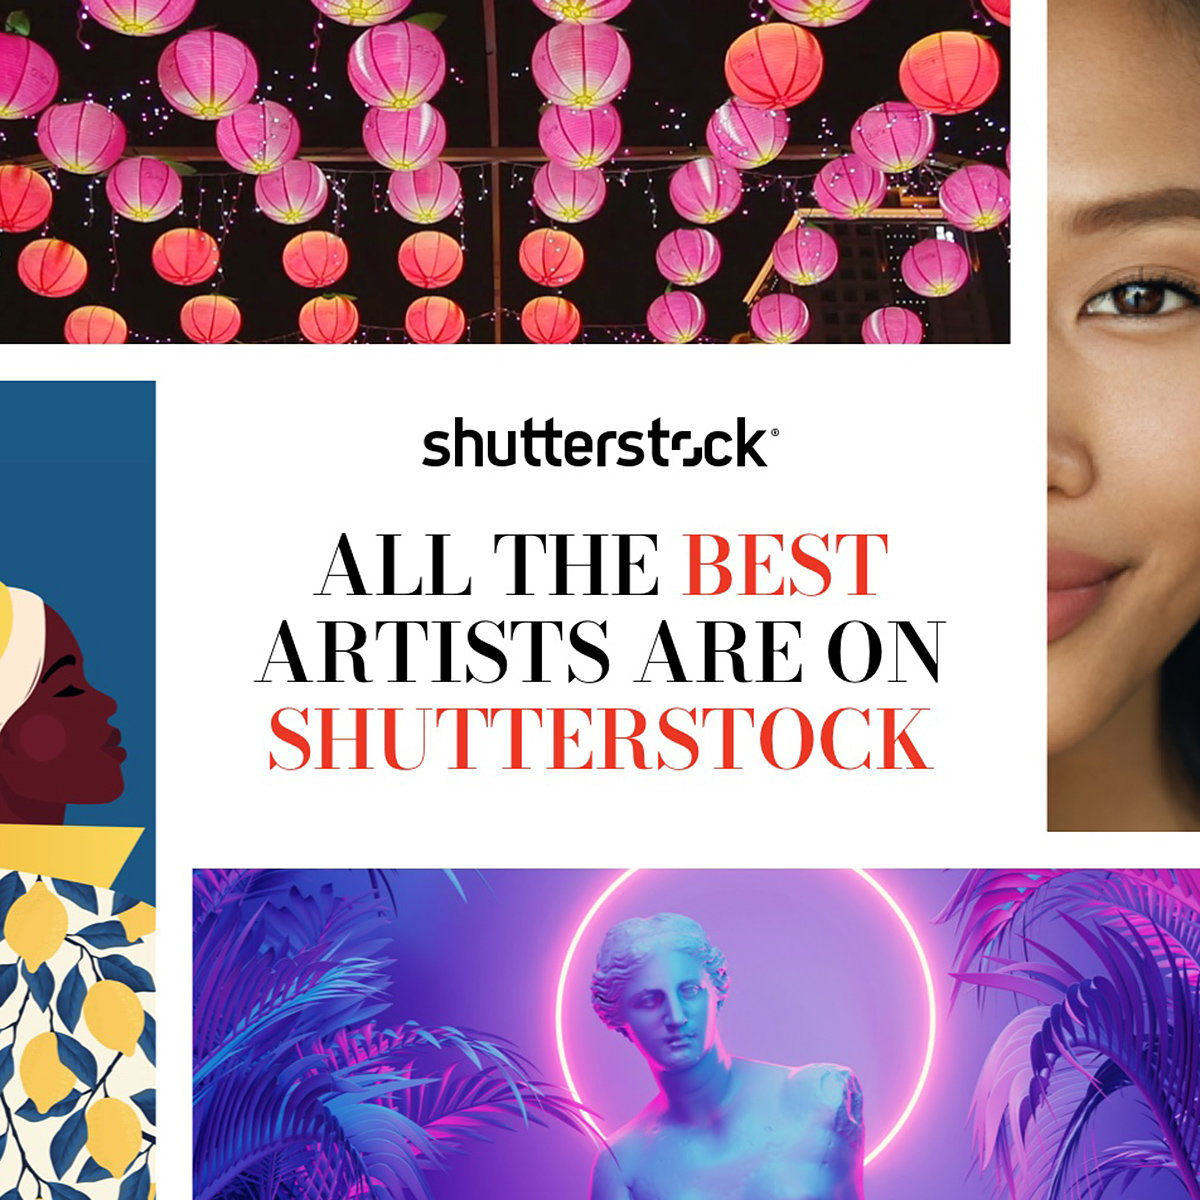 Shutterstock Launches 'All The Best Artists' Campaign